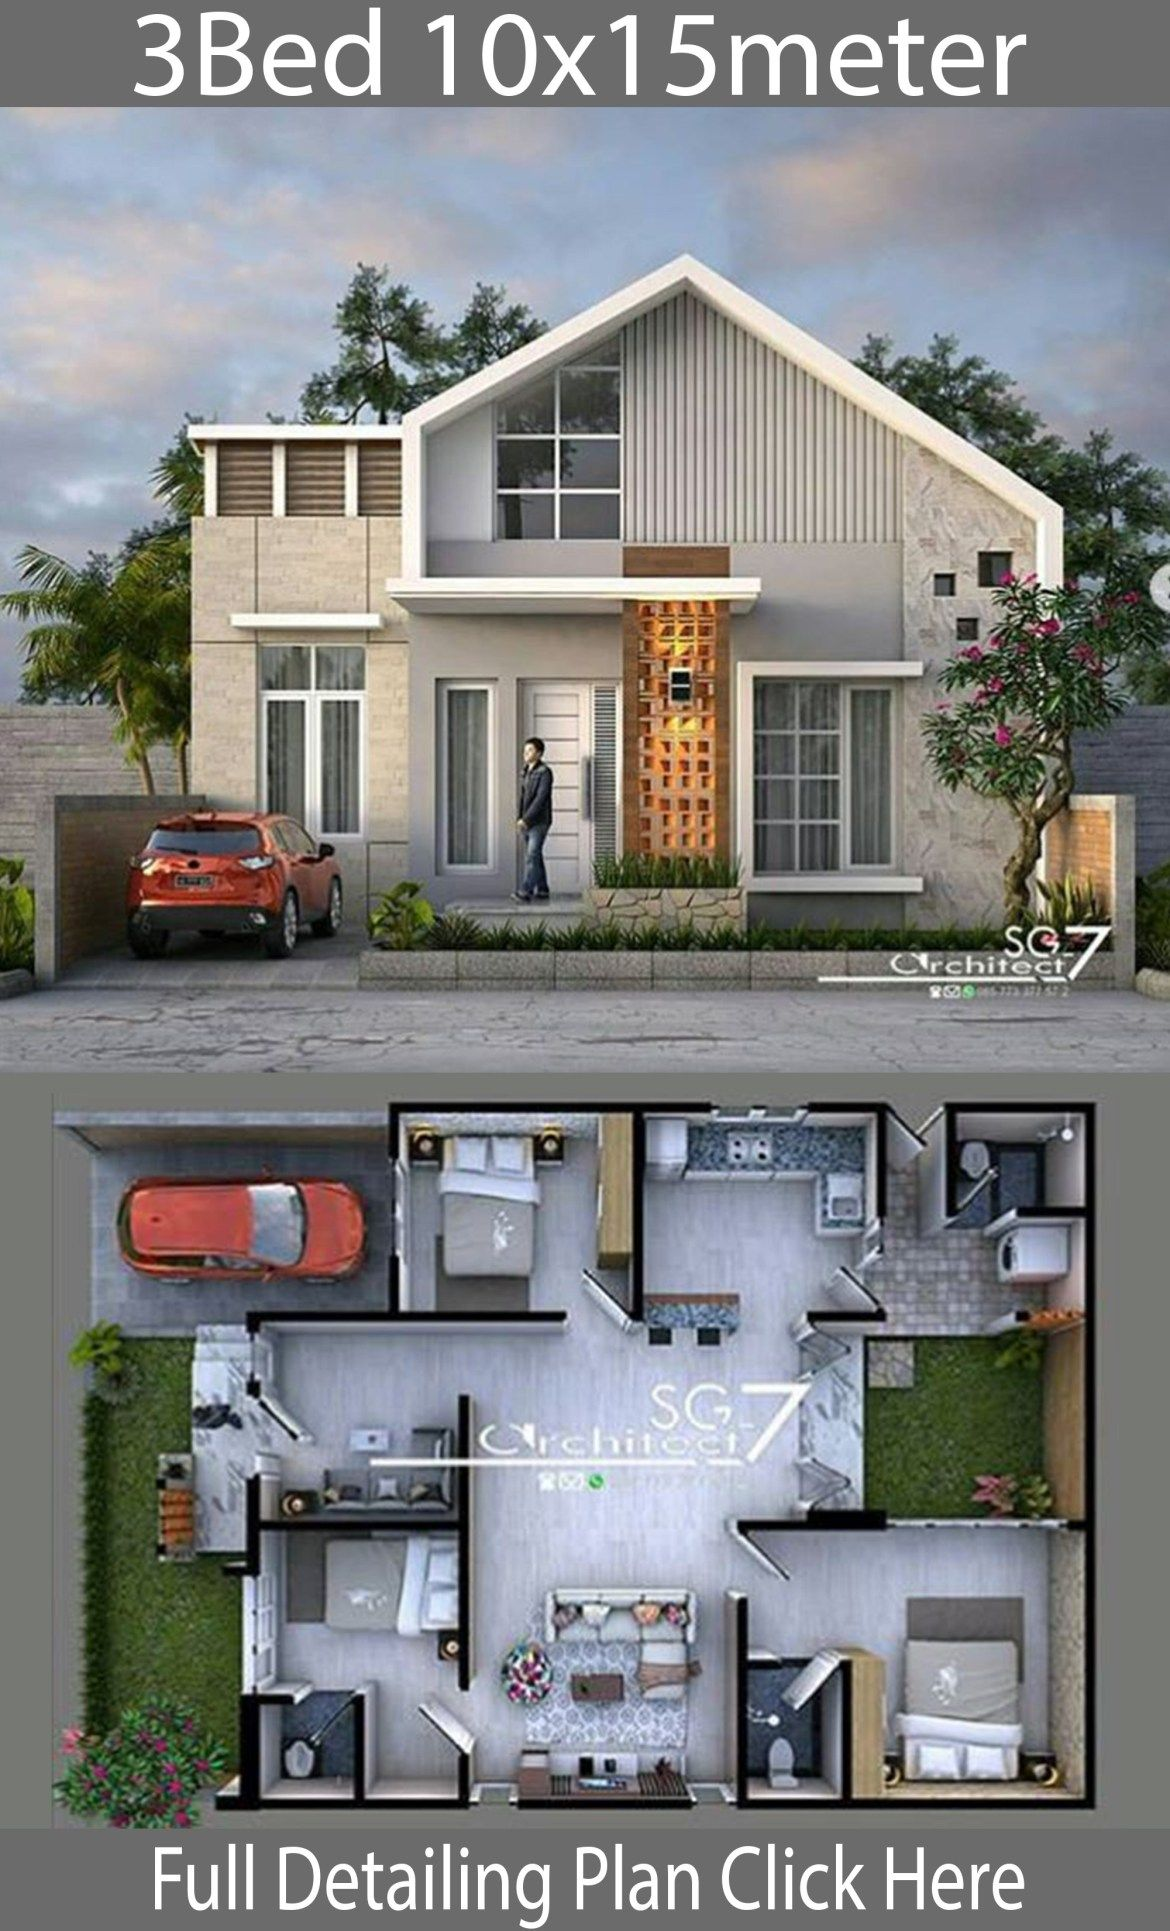 3 Bedrooms Home Design Plan 10x15m Home Design With Plansearch Small House Design Architecture Small House Architecture Home Design Plan